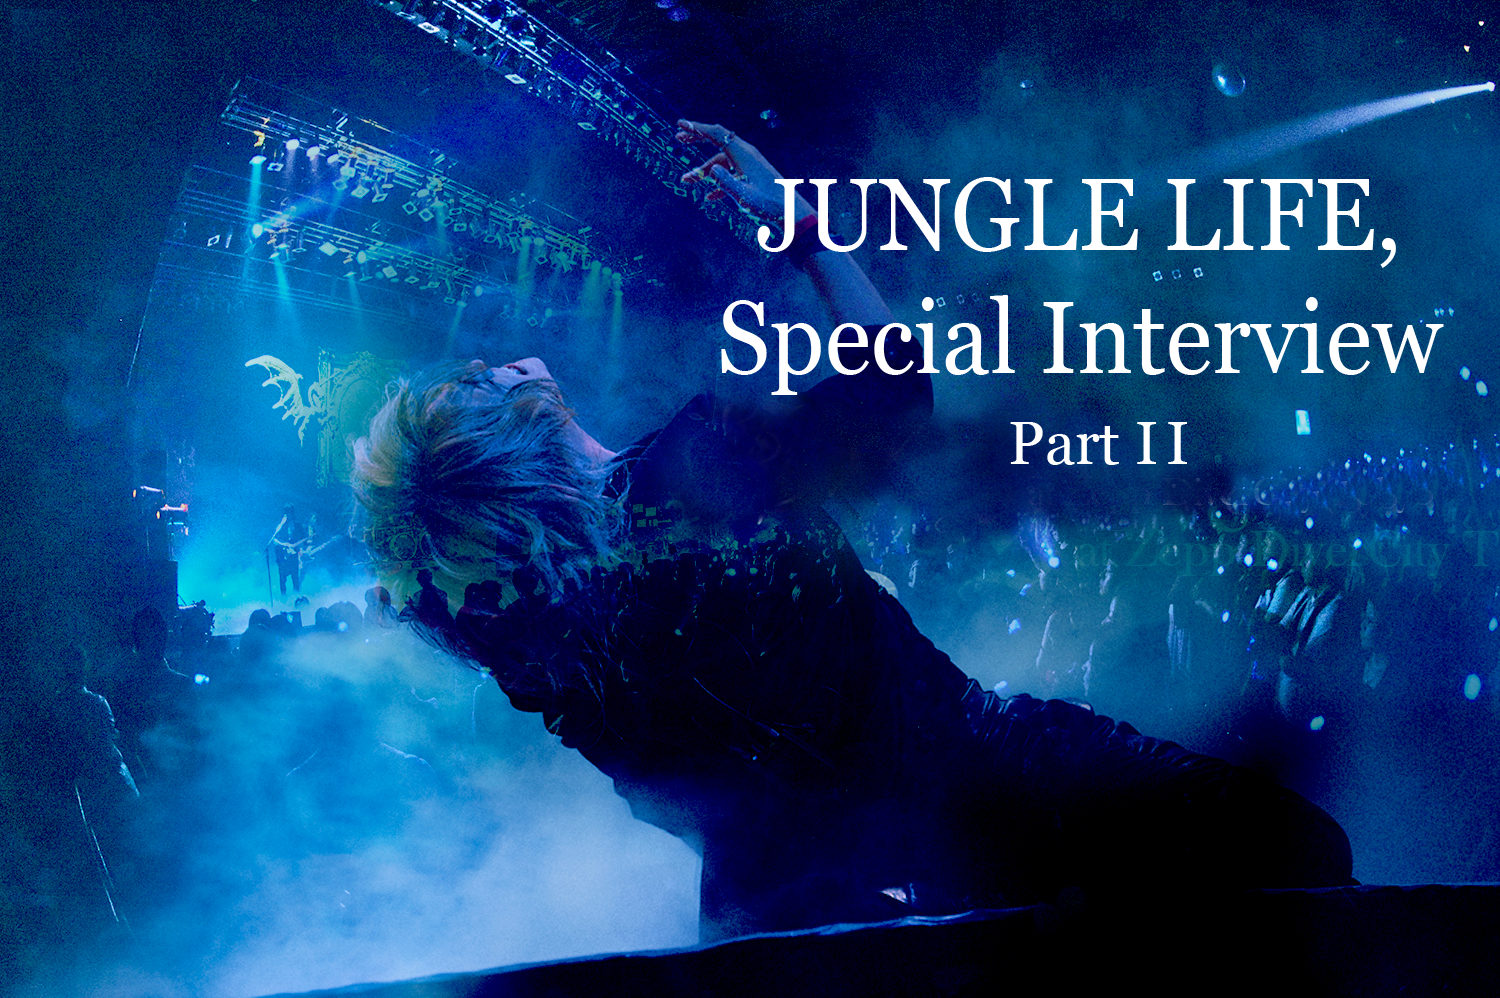 JUNGLE LIFE, Exclusive Interview Part II